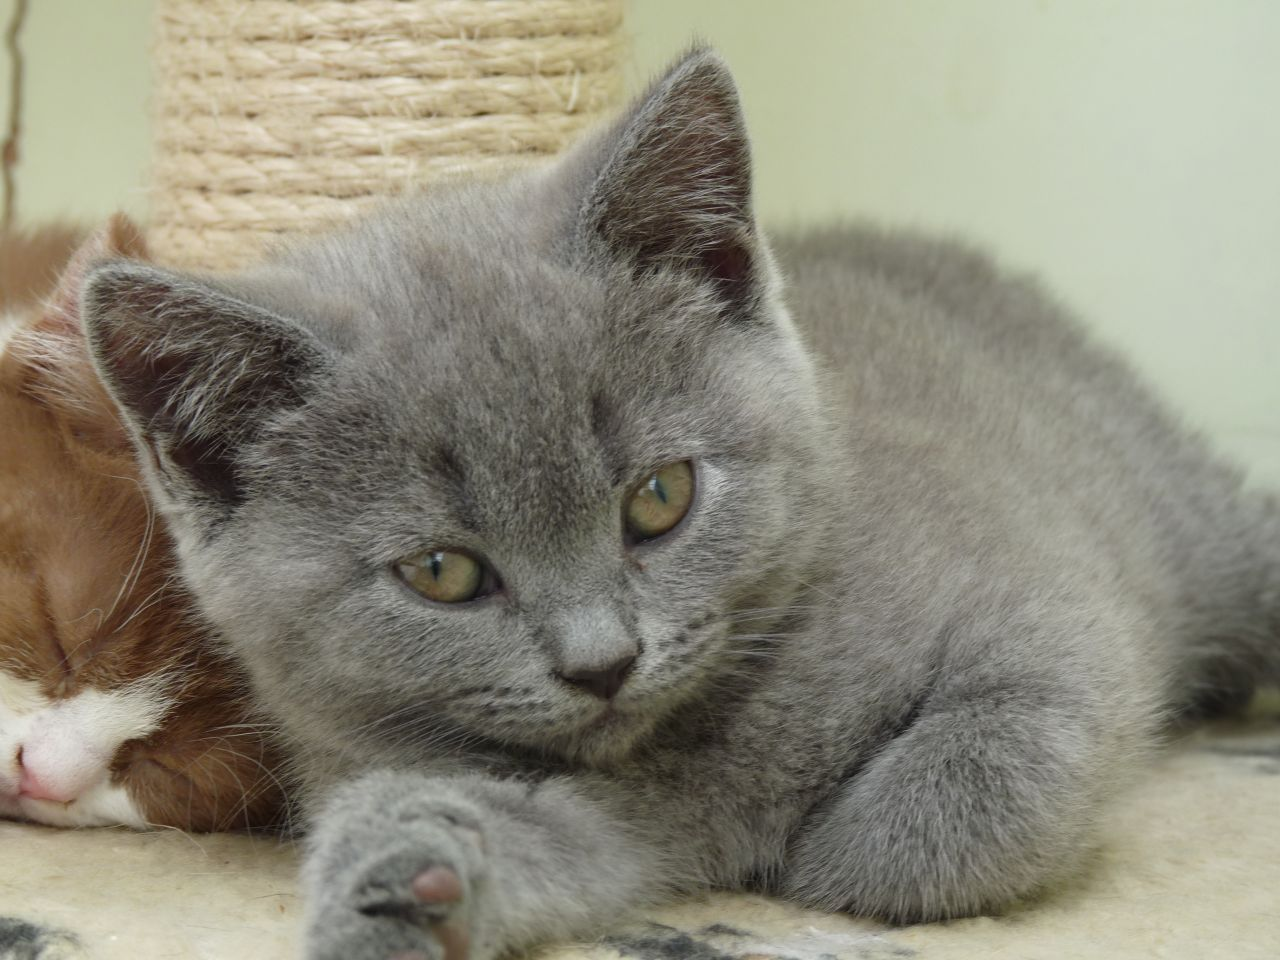 British Shorthair Kittens For Sale Orpington Kent Pets4homes British Shorthair Kittens British Shorthair Cats Kittens Cutest